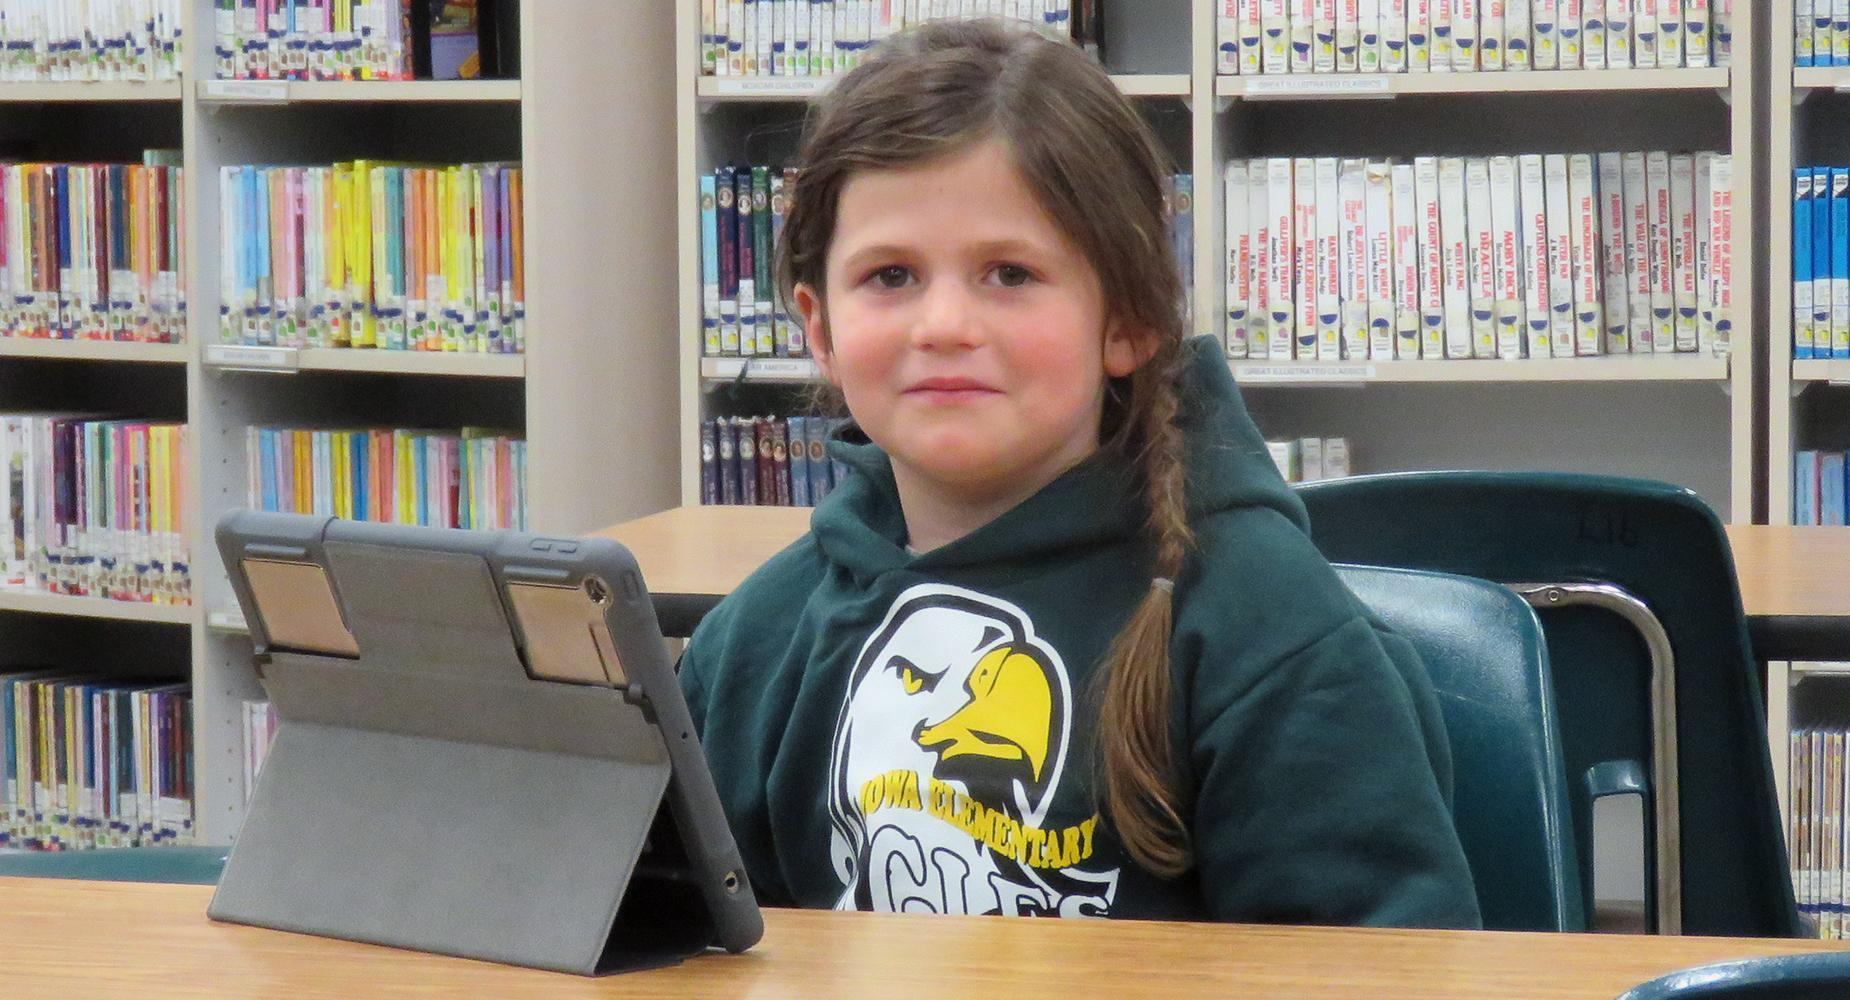 Iowa Elementary student (girl) with an iPad in the library.